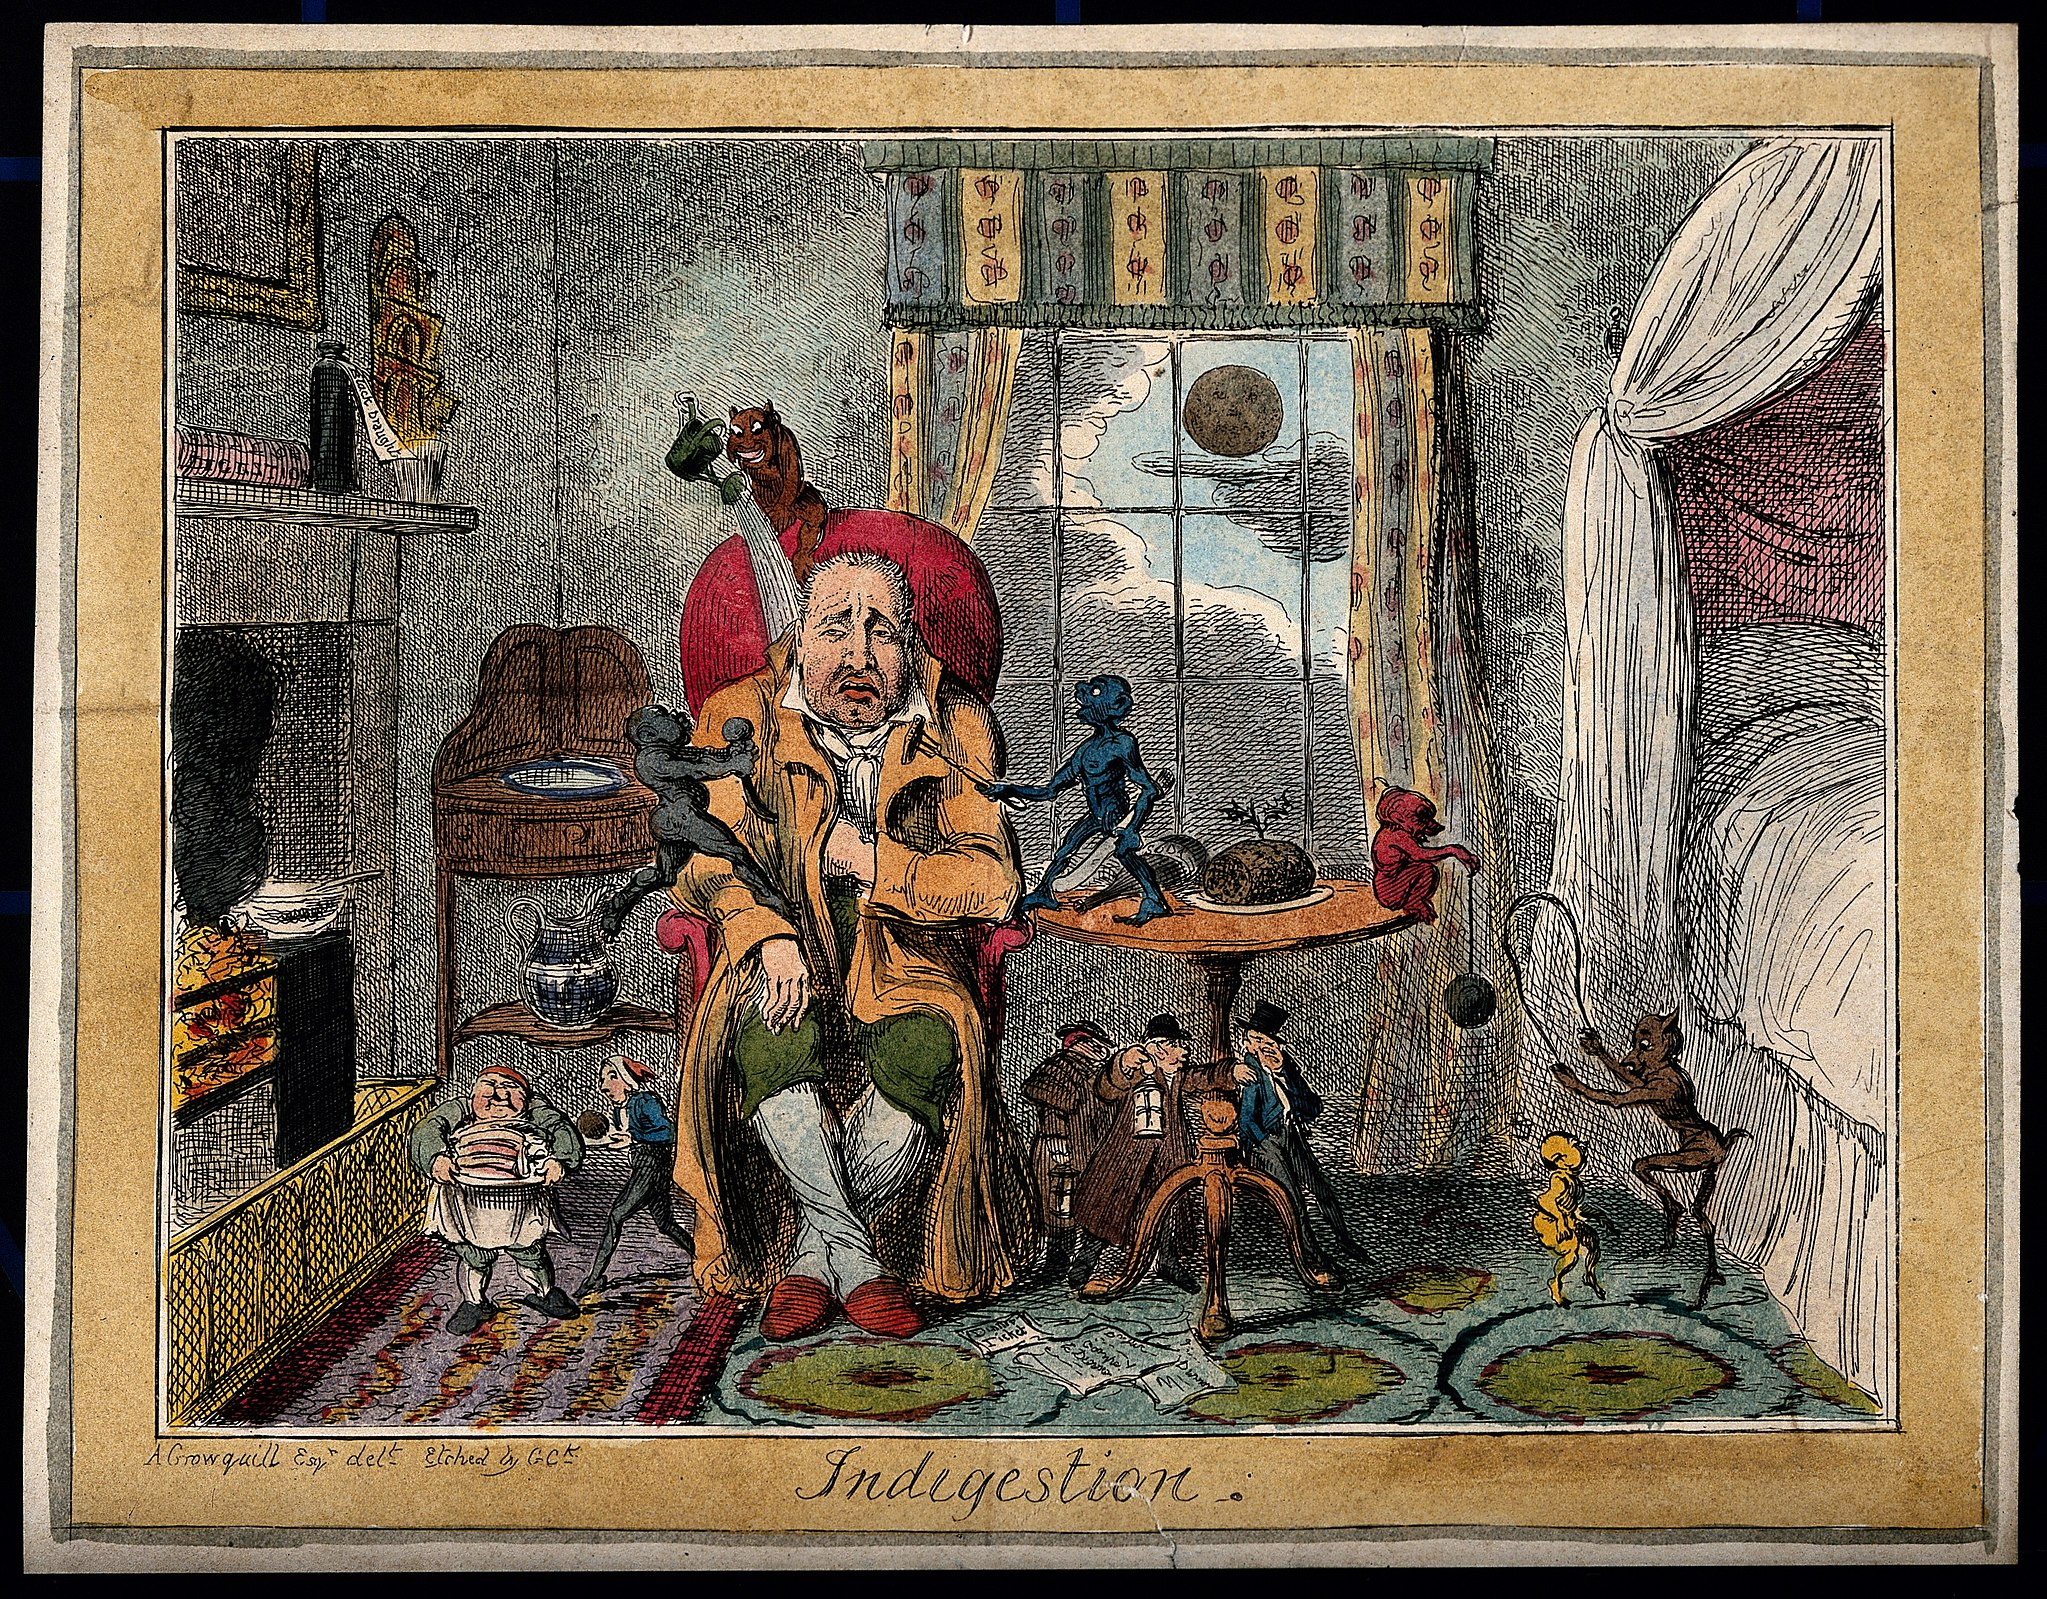 A man suffering from indigestion; suggested by little charac Wellcome V0010877